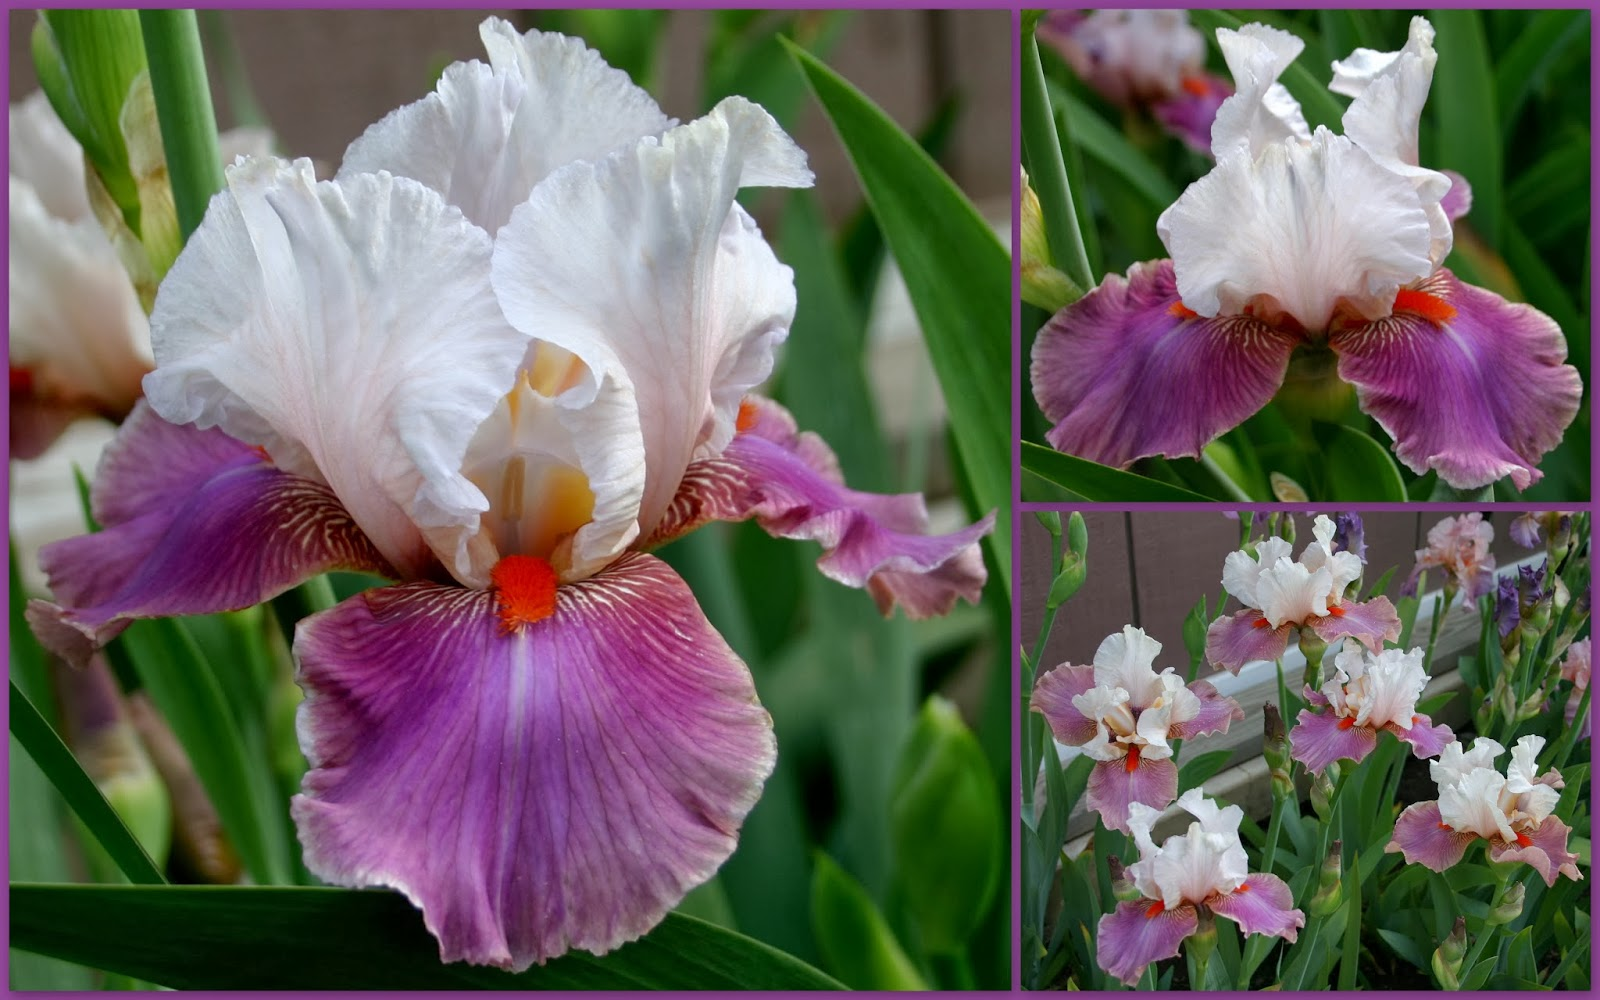 Tall bearded iris blooms sowing the seeds tall bearded iris blooms izmirmasajfo Images